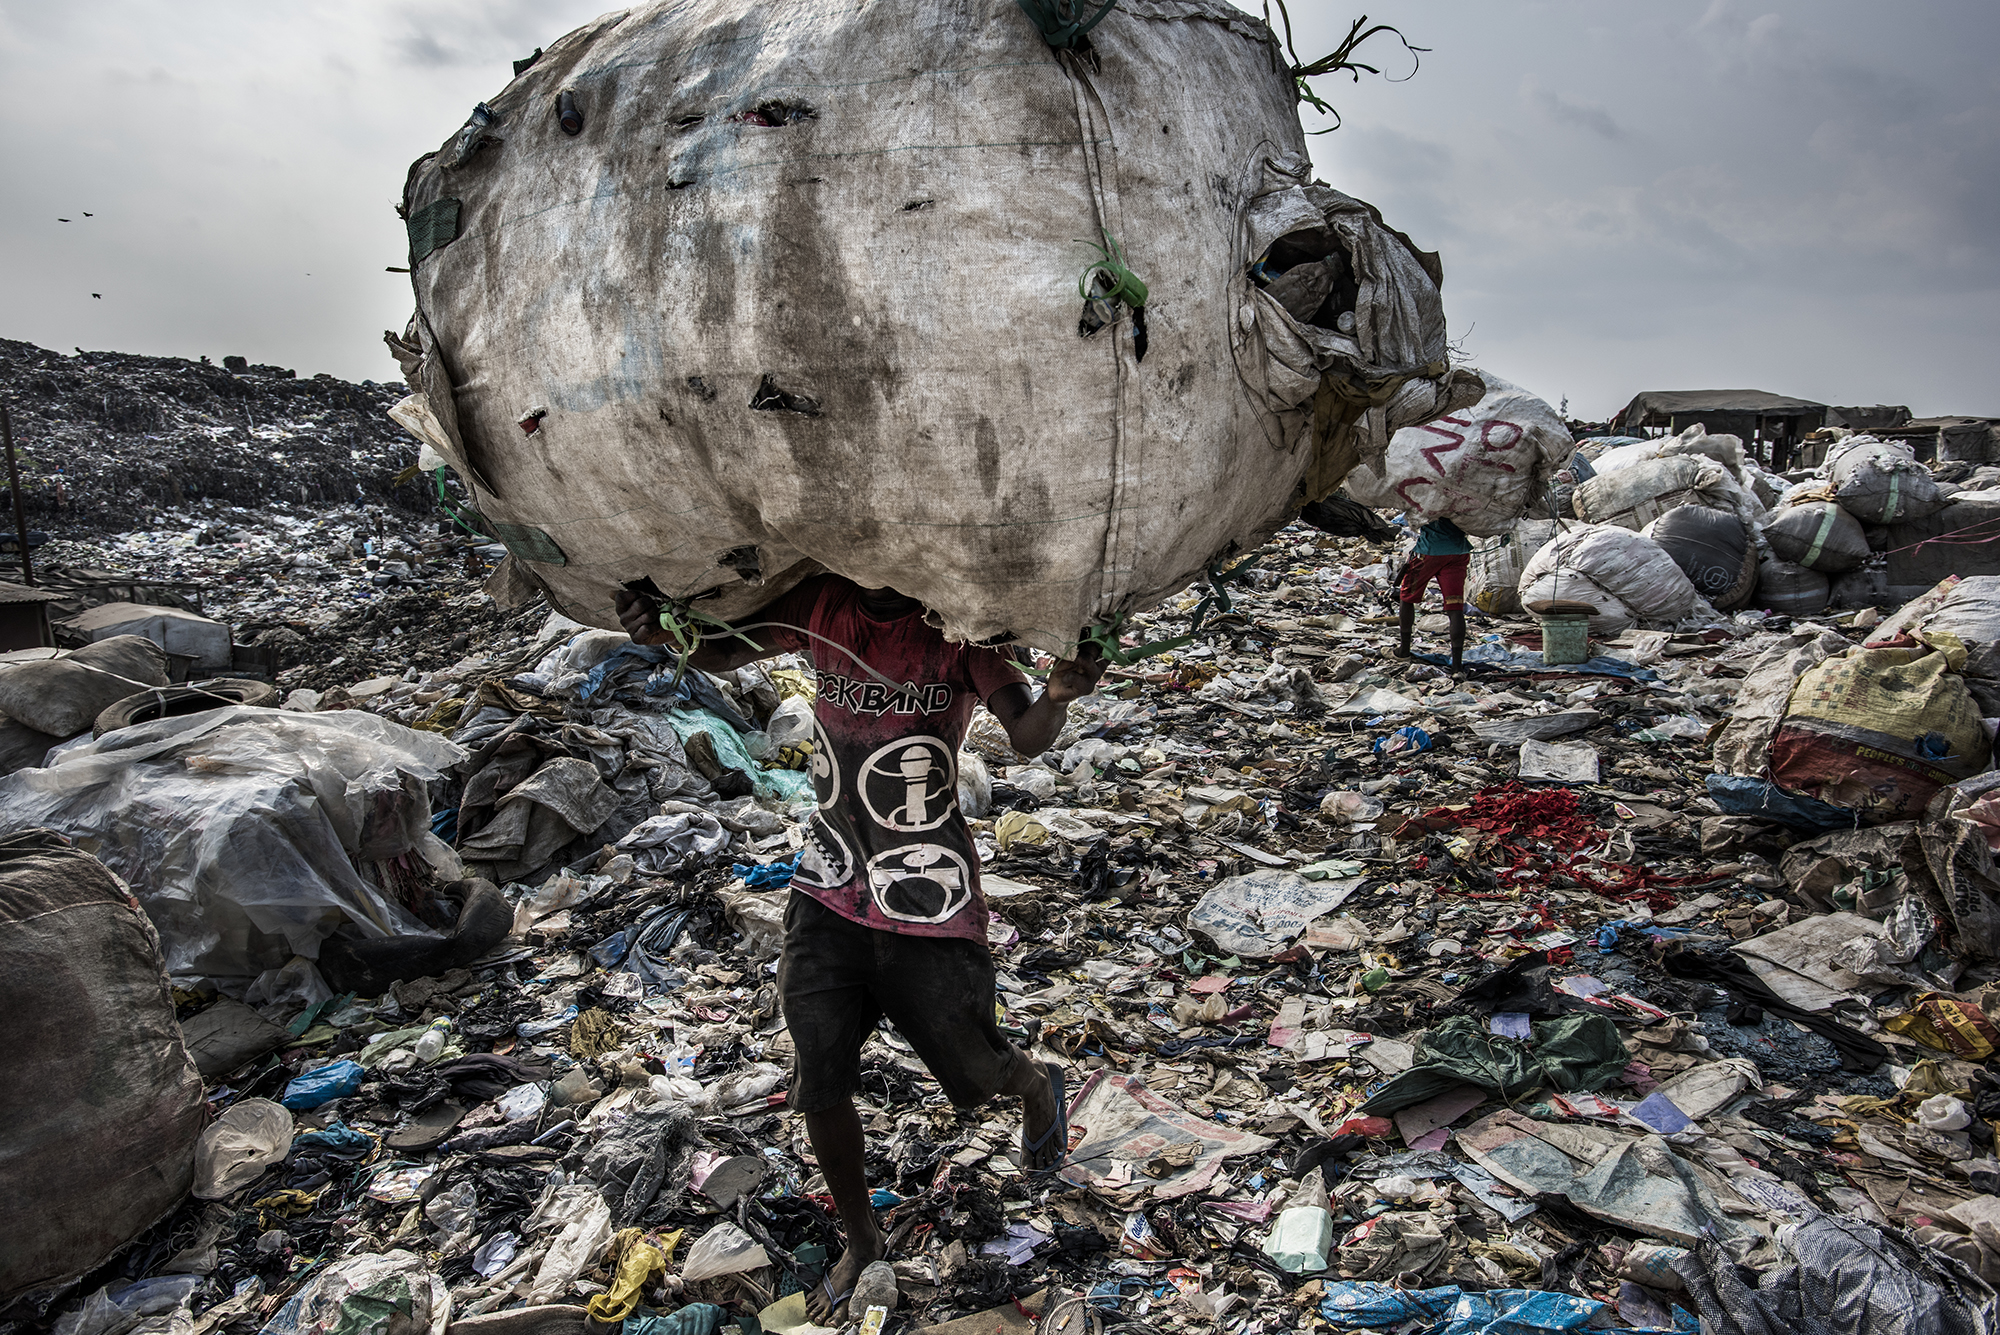 Nigeria, Lagos, 27 January 2017A man carries a huge back of pet bottles collected for recycling at the Olusosun landfill.The Olusosun landfill in Lagos receives between 3-5000 tons per day and is about 45 ha in size. About 5000 scavengers work here and often also live. They collect anything that is recyable like plastics, textiles, electronics, paper etc. The problem is that the landfill is full and the city wants to close it down. The question is where it will go, there are no incinerators and the infrastructure to formally recycle is lacking. There is one other landfill, but it needs to close as well.Remarkable is that the landfills in Lagos smell less compared to other landfills in the world: Nigerians throw away less food, because they either finish their plate or feed it to the animals.Kadir van Lohuizen / NOOR